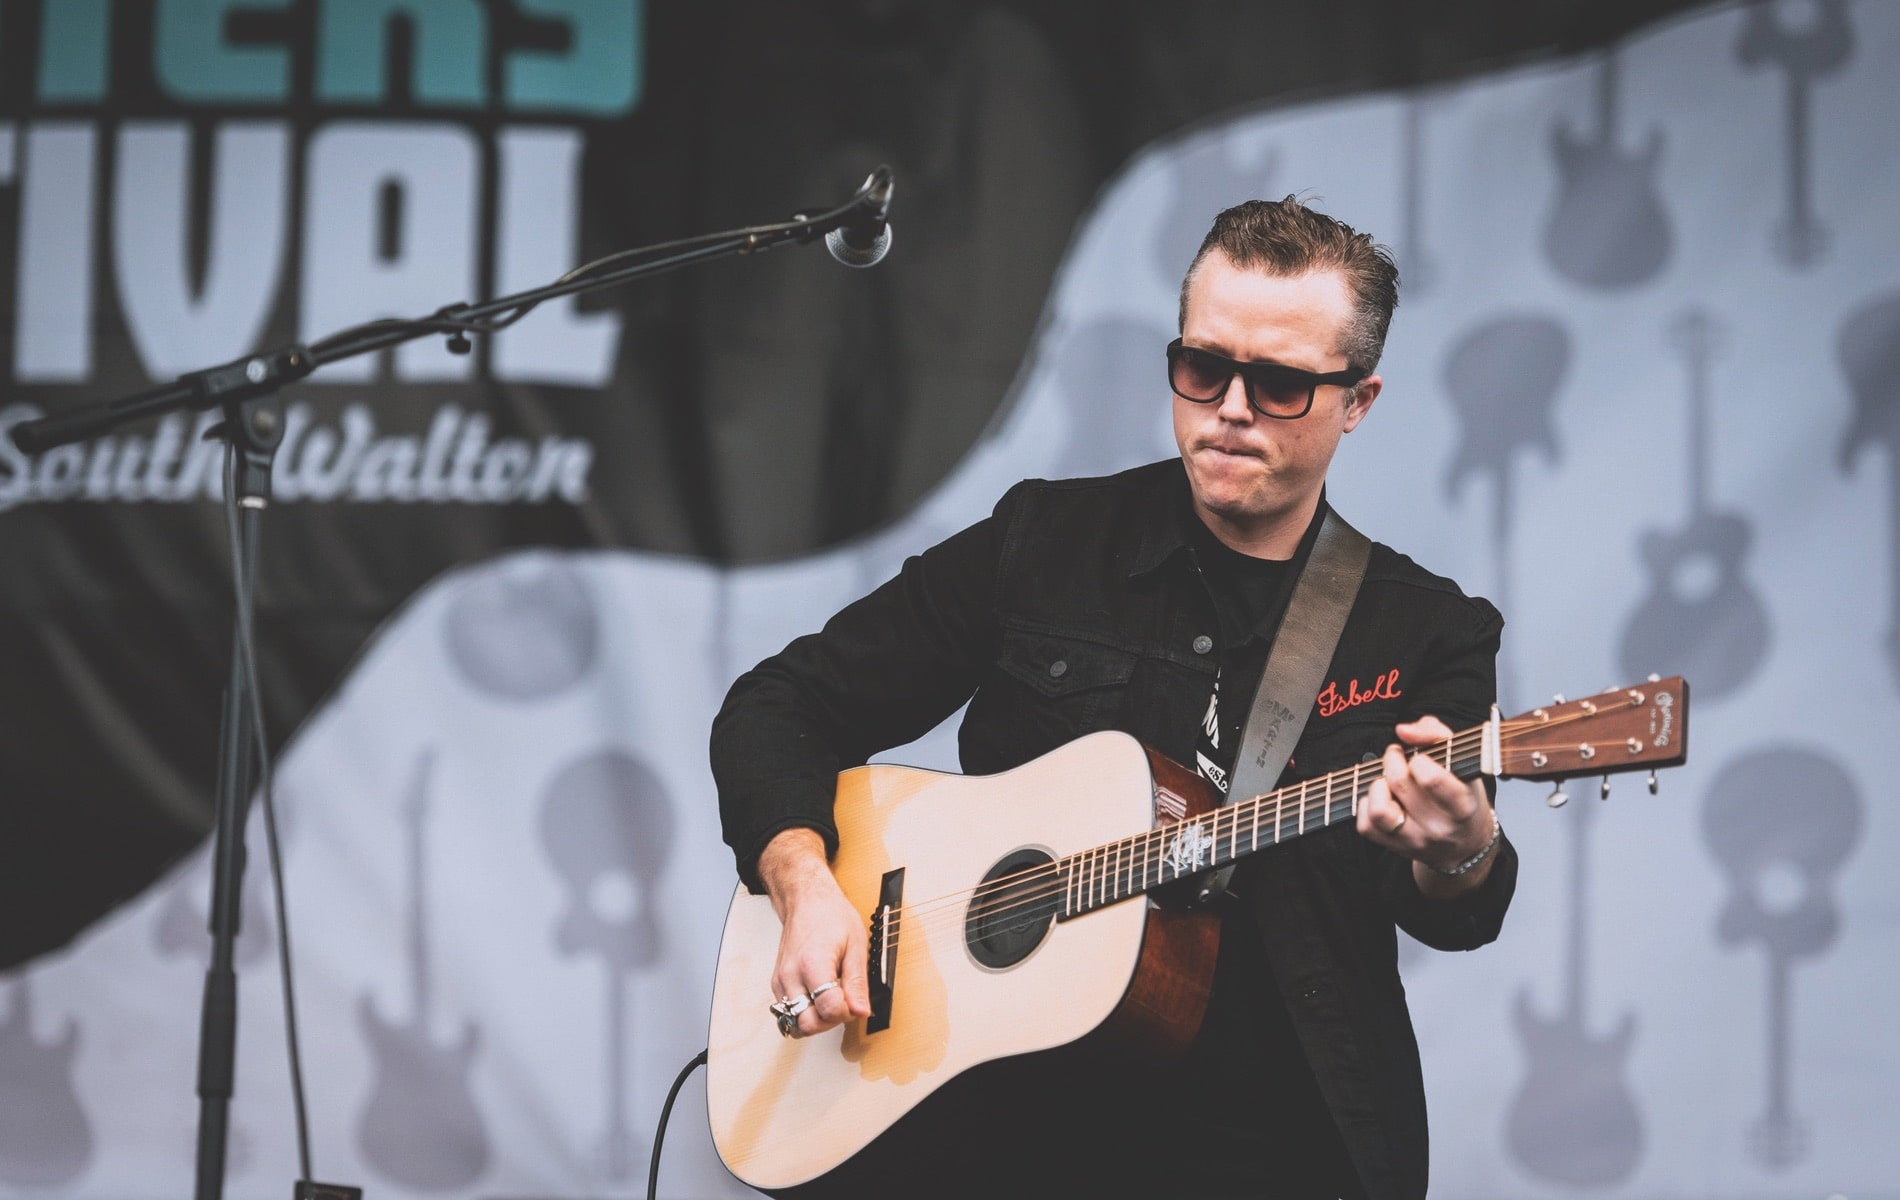 Jason Isbell returned to 30A Fest to headline Saturday's concerts at Grand Boulevard for the 30A Songwriters Festival